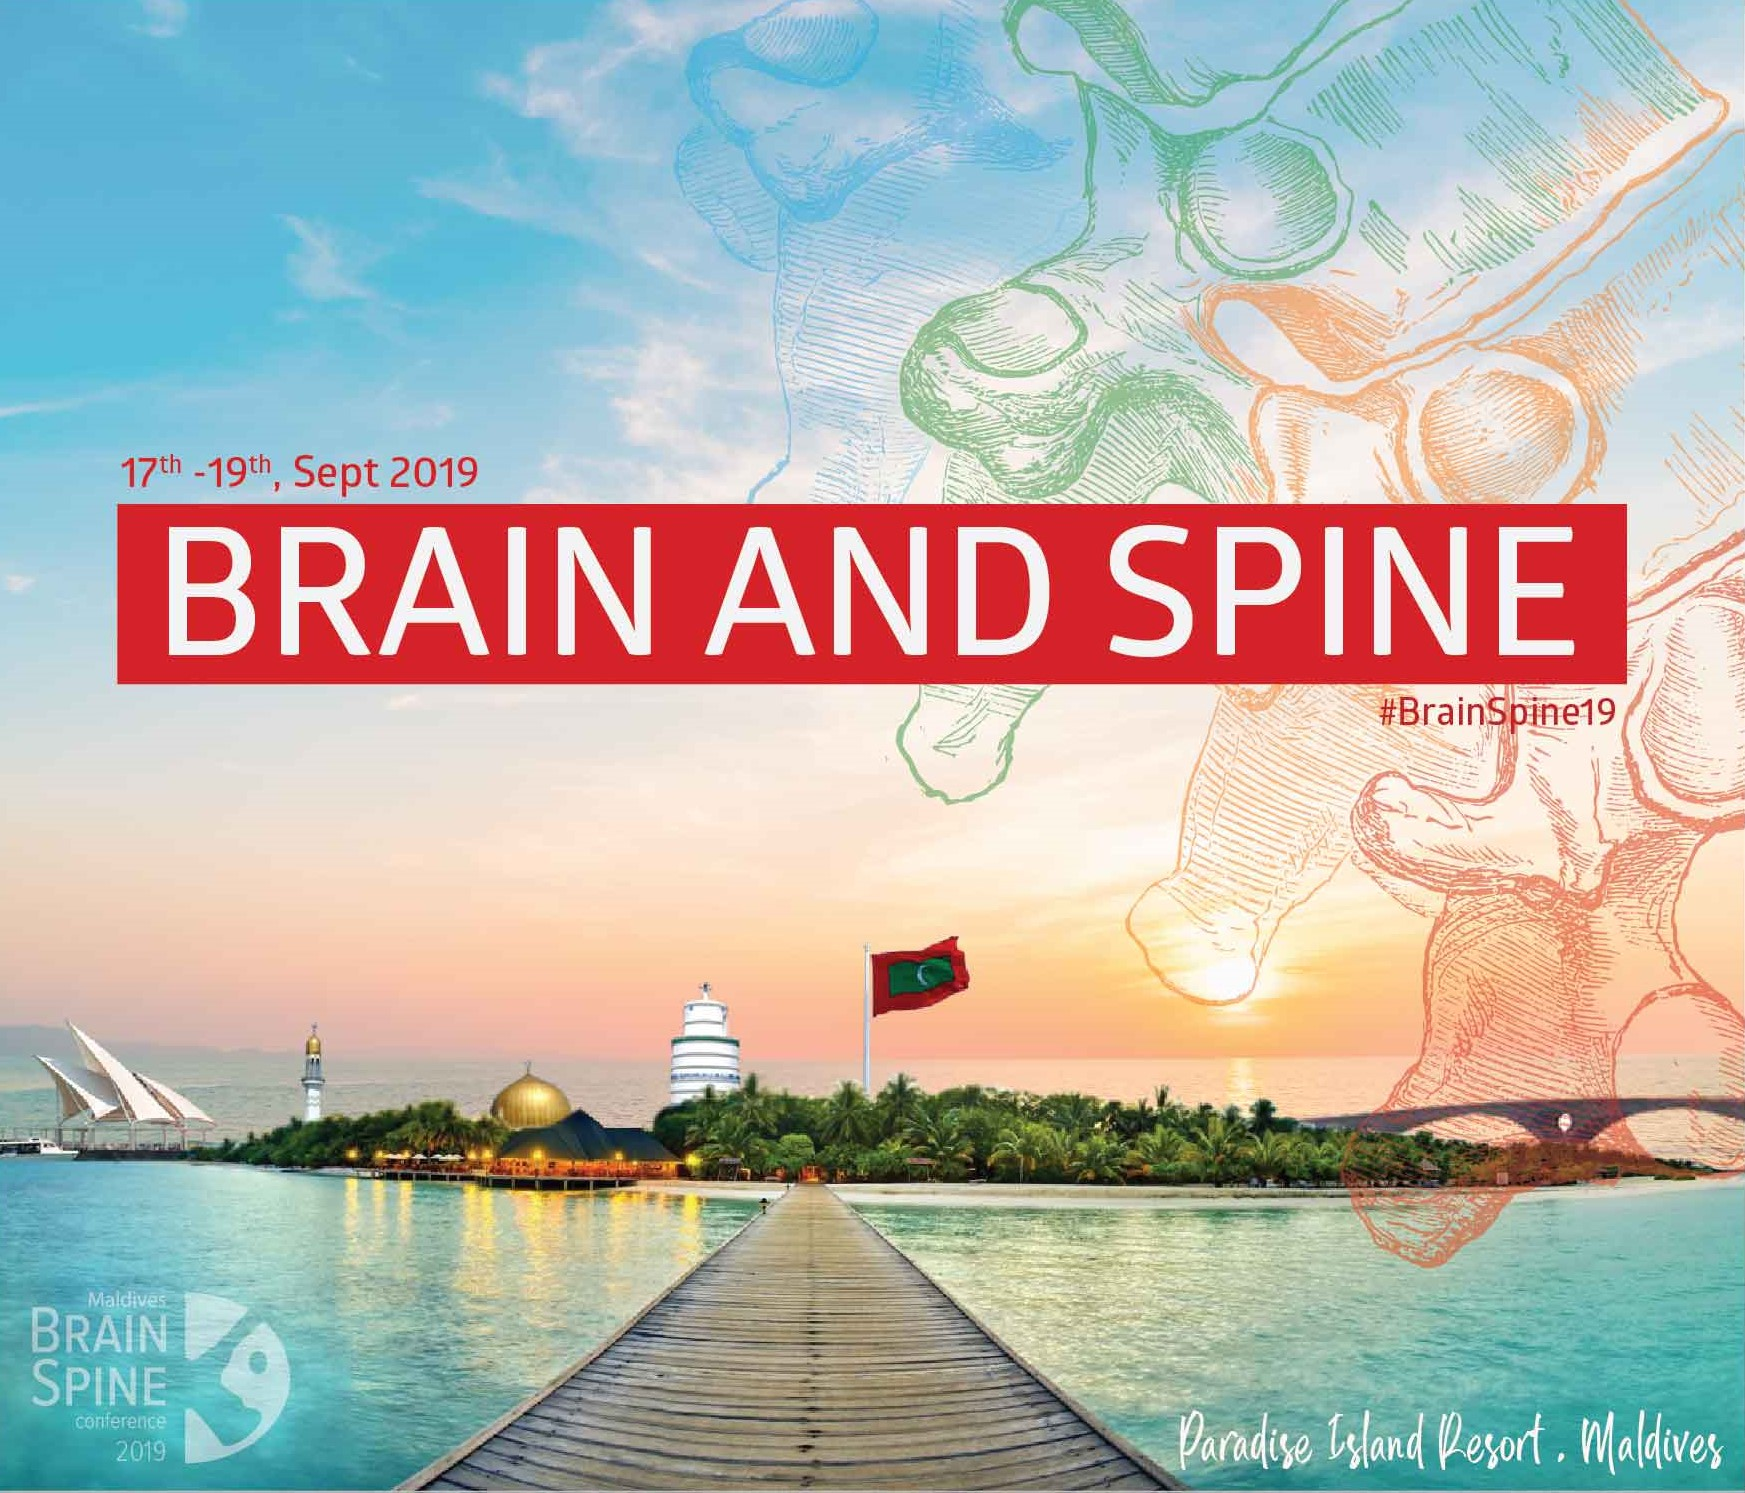 Brain and Spine conference 2019 ::  Caring about you when